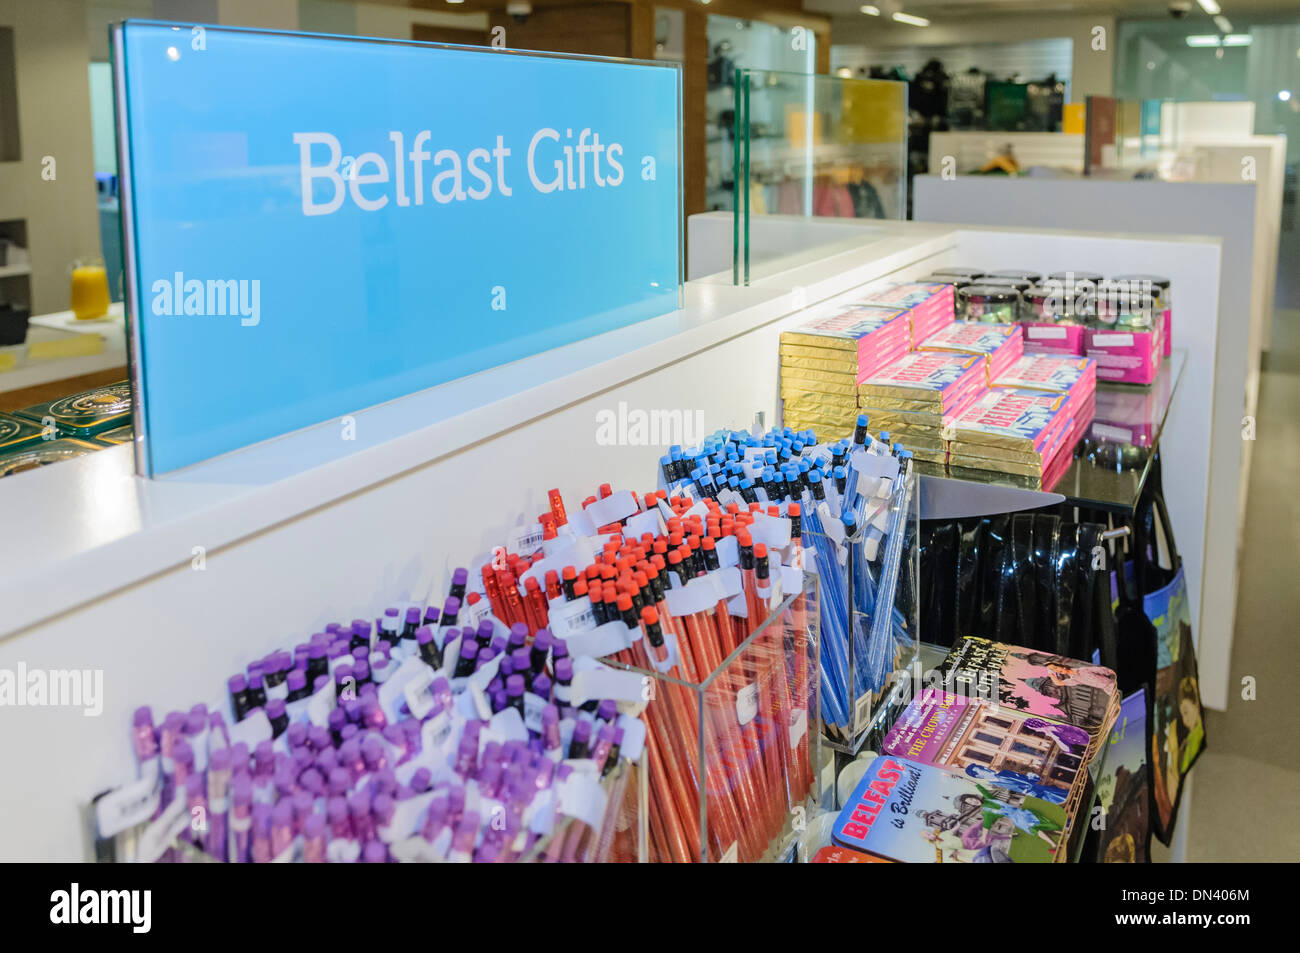 Belfast gifts in Visit Belfast tourist information centre - Stock Image